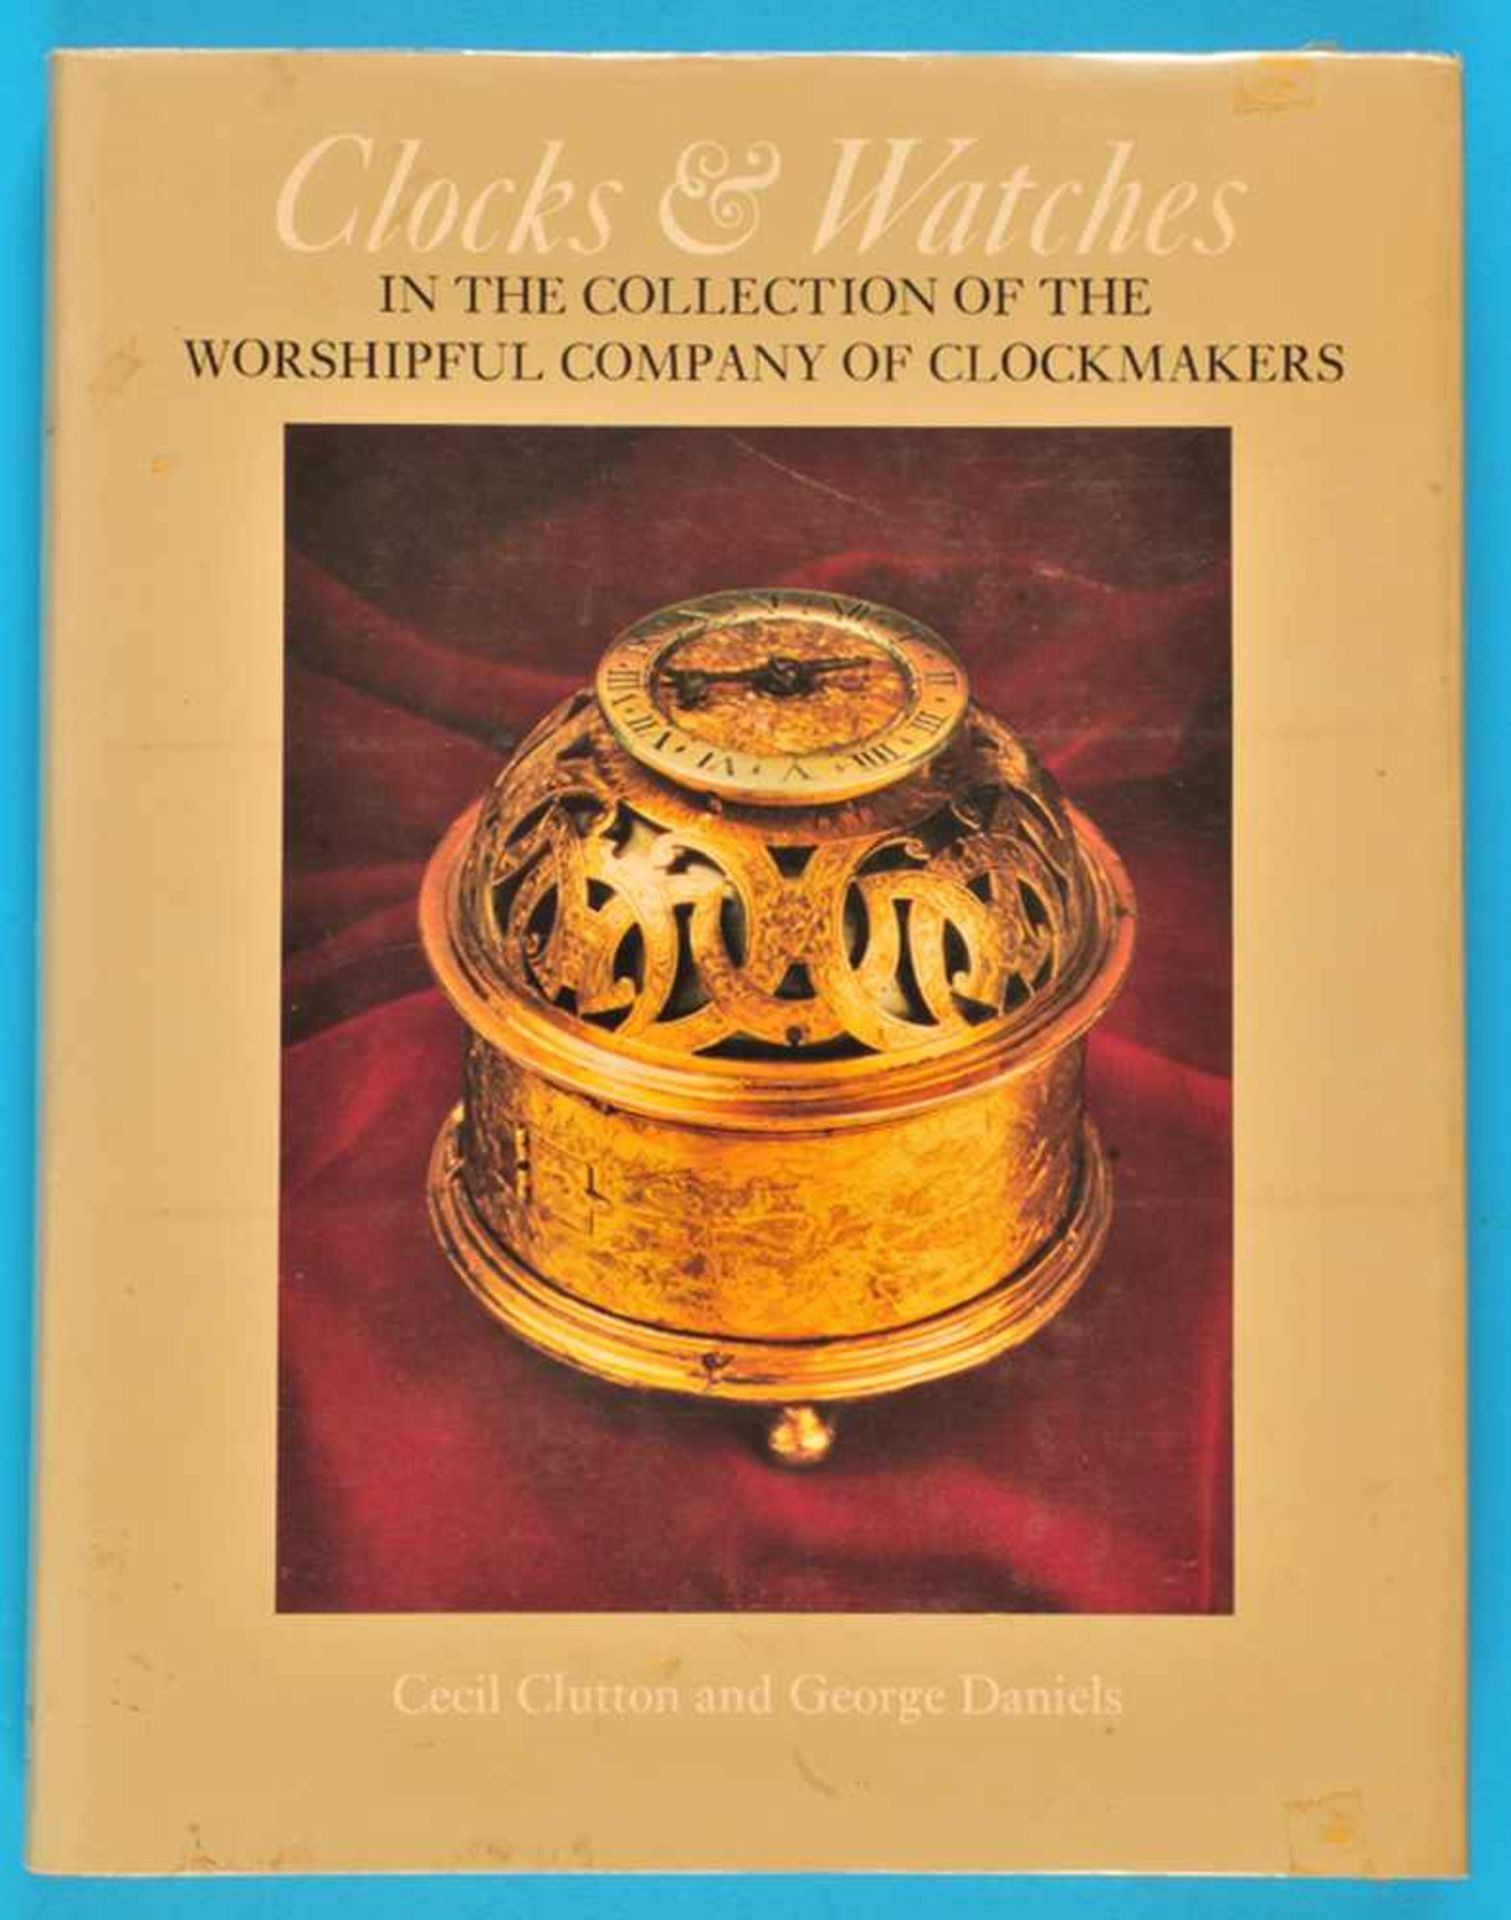 Los 27 - Cecil Clutton/George Daniels, Clocks & Watches In the Collection of the Worshipful Company of